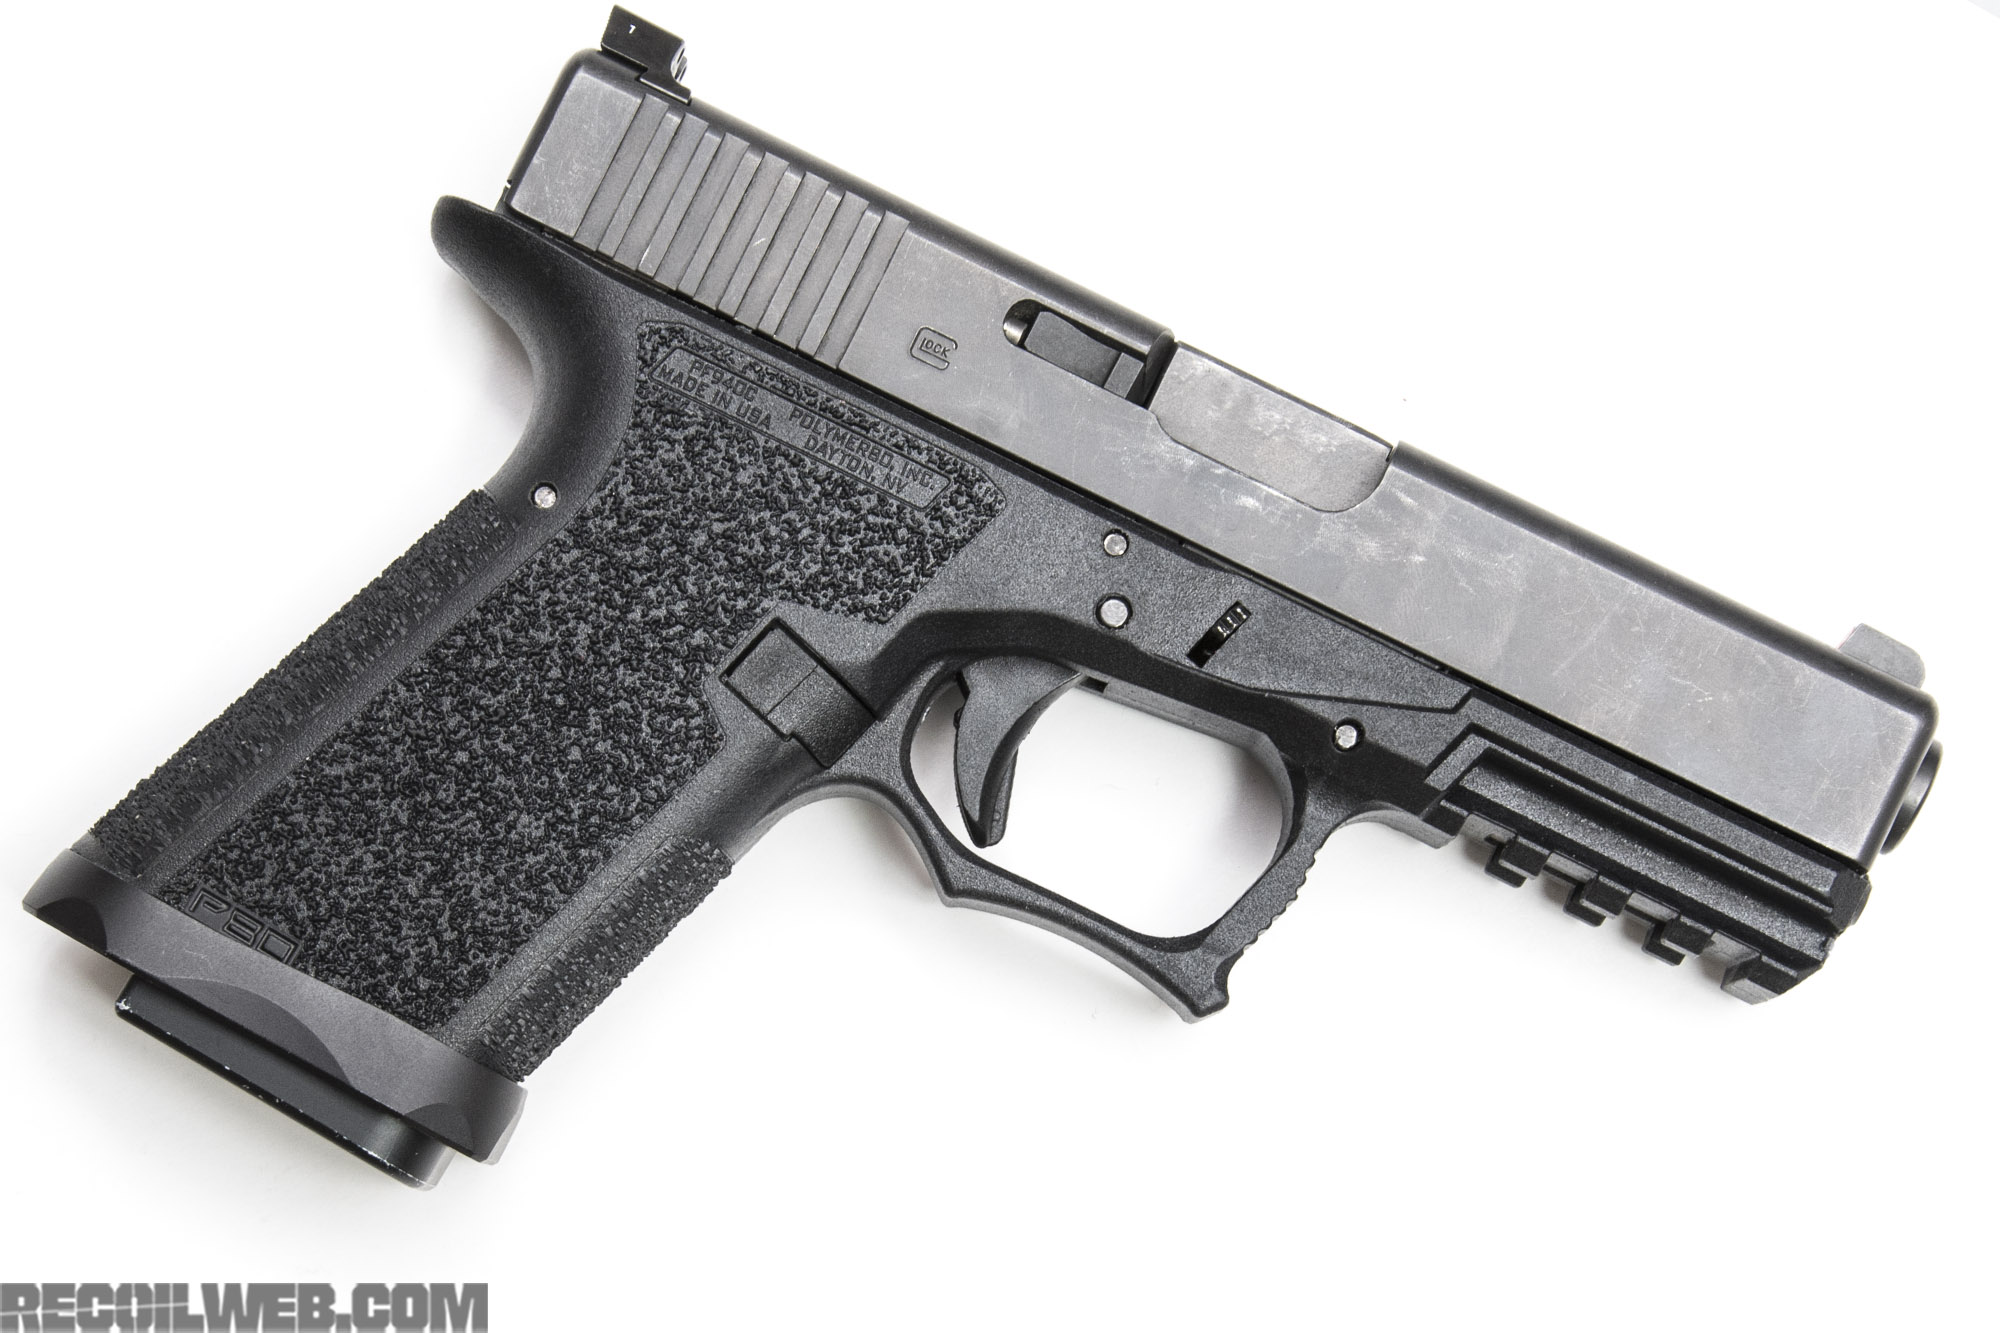 Some Assembly Required: PF940Cv1 80% Compact Glock Frame